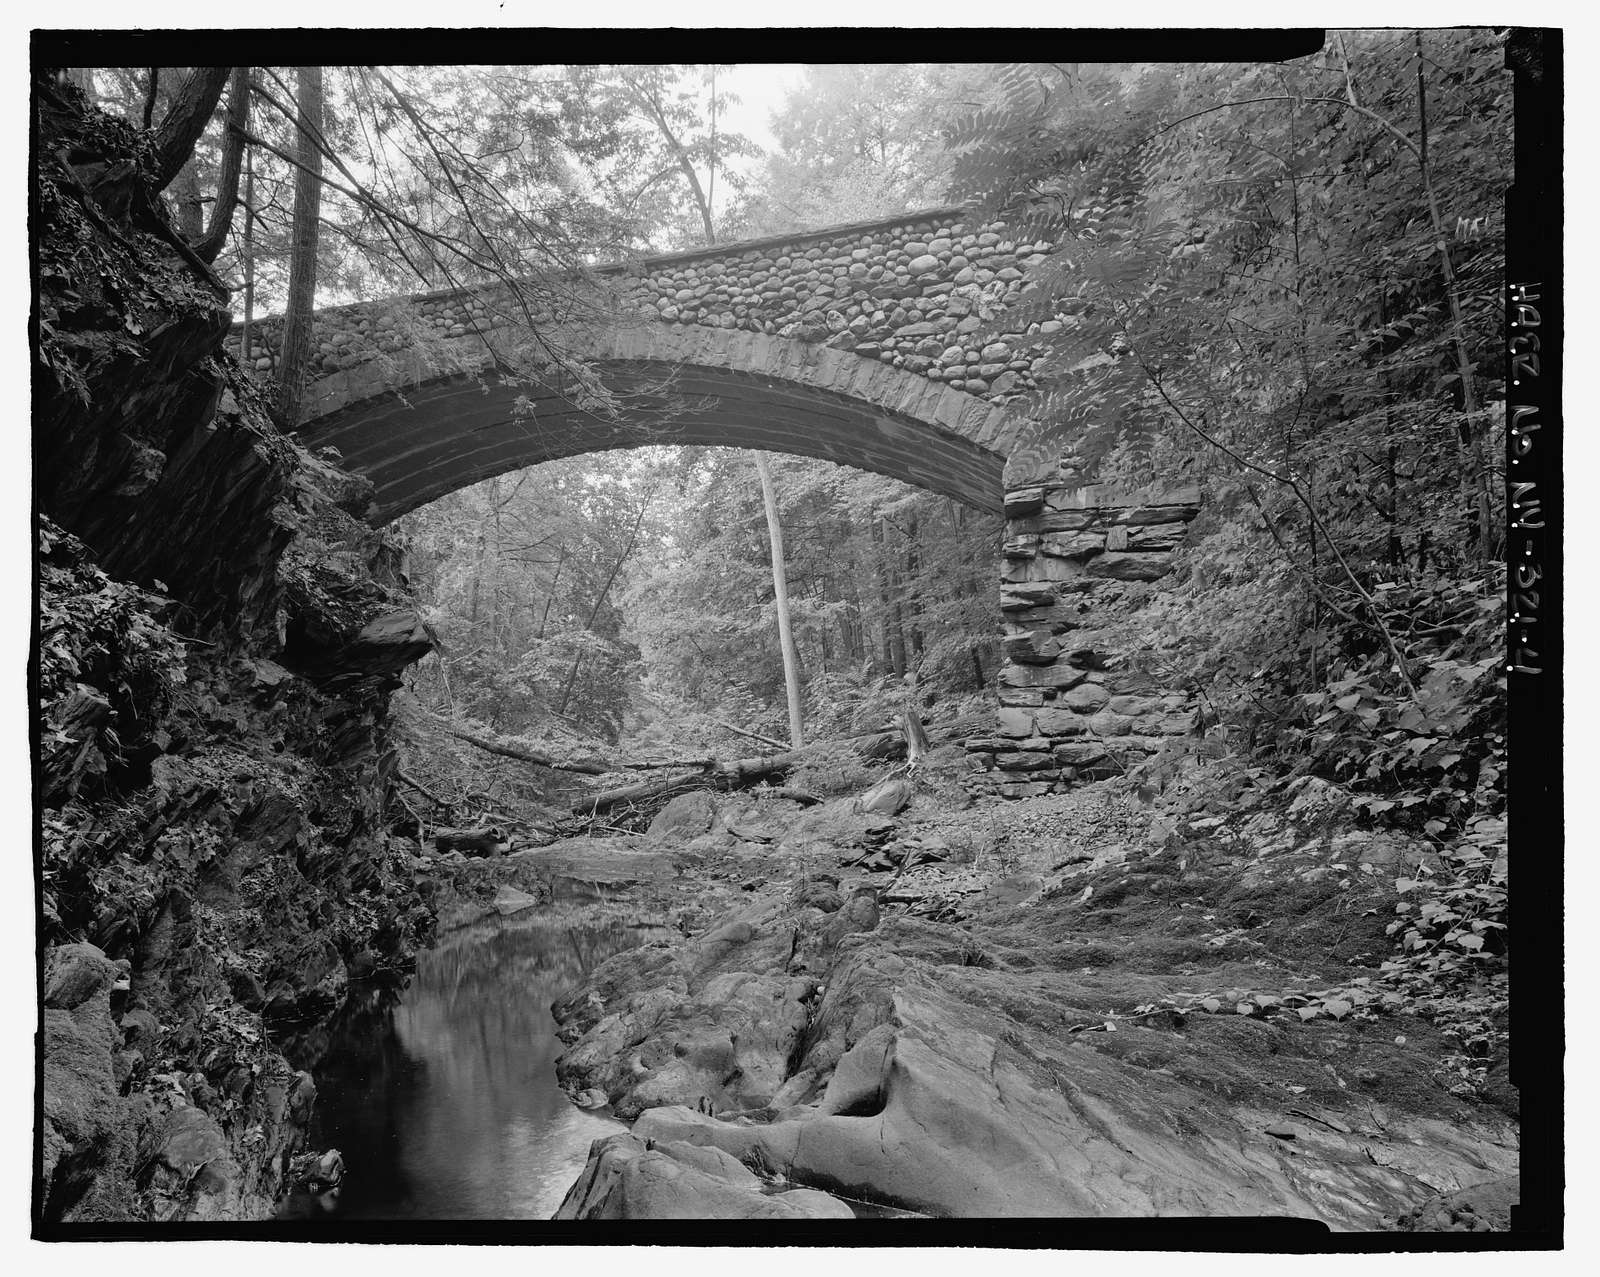 Rustic Bridge, NPS Route No. 13 spanning Crum Elbow Creek, Hyde Park, Dutchess County, NY